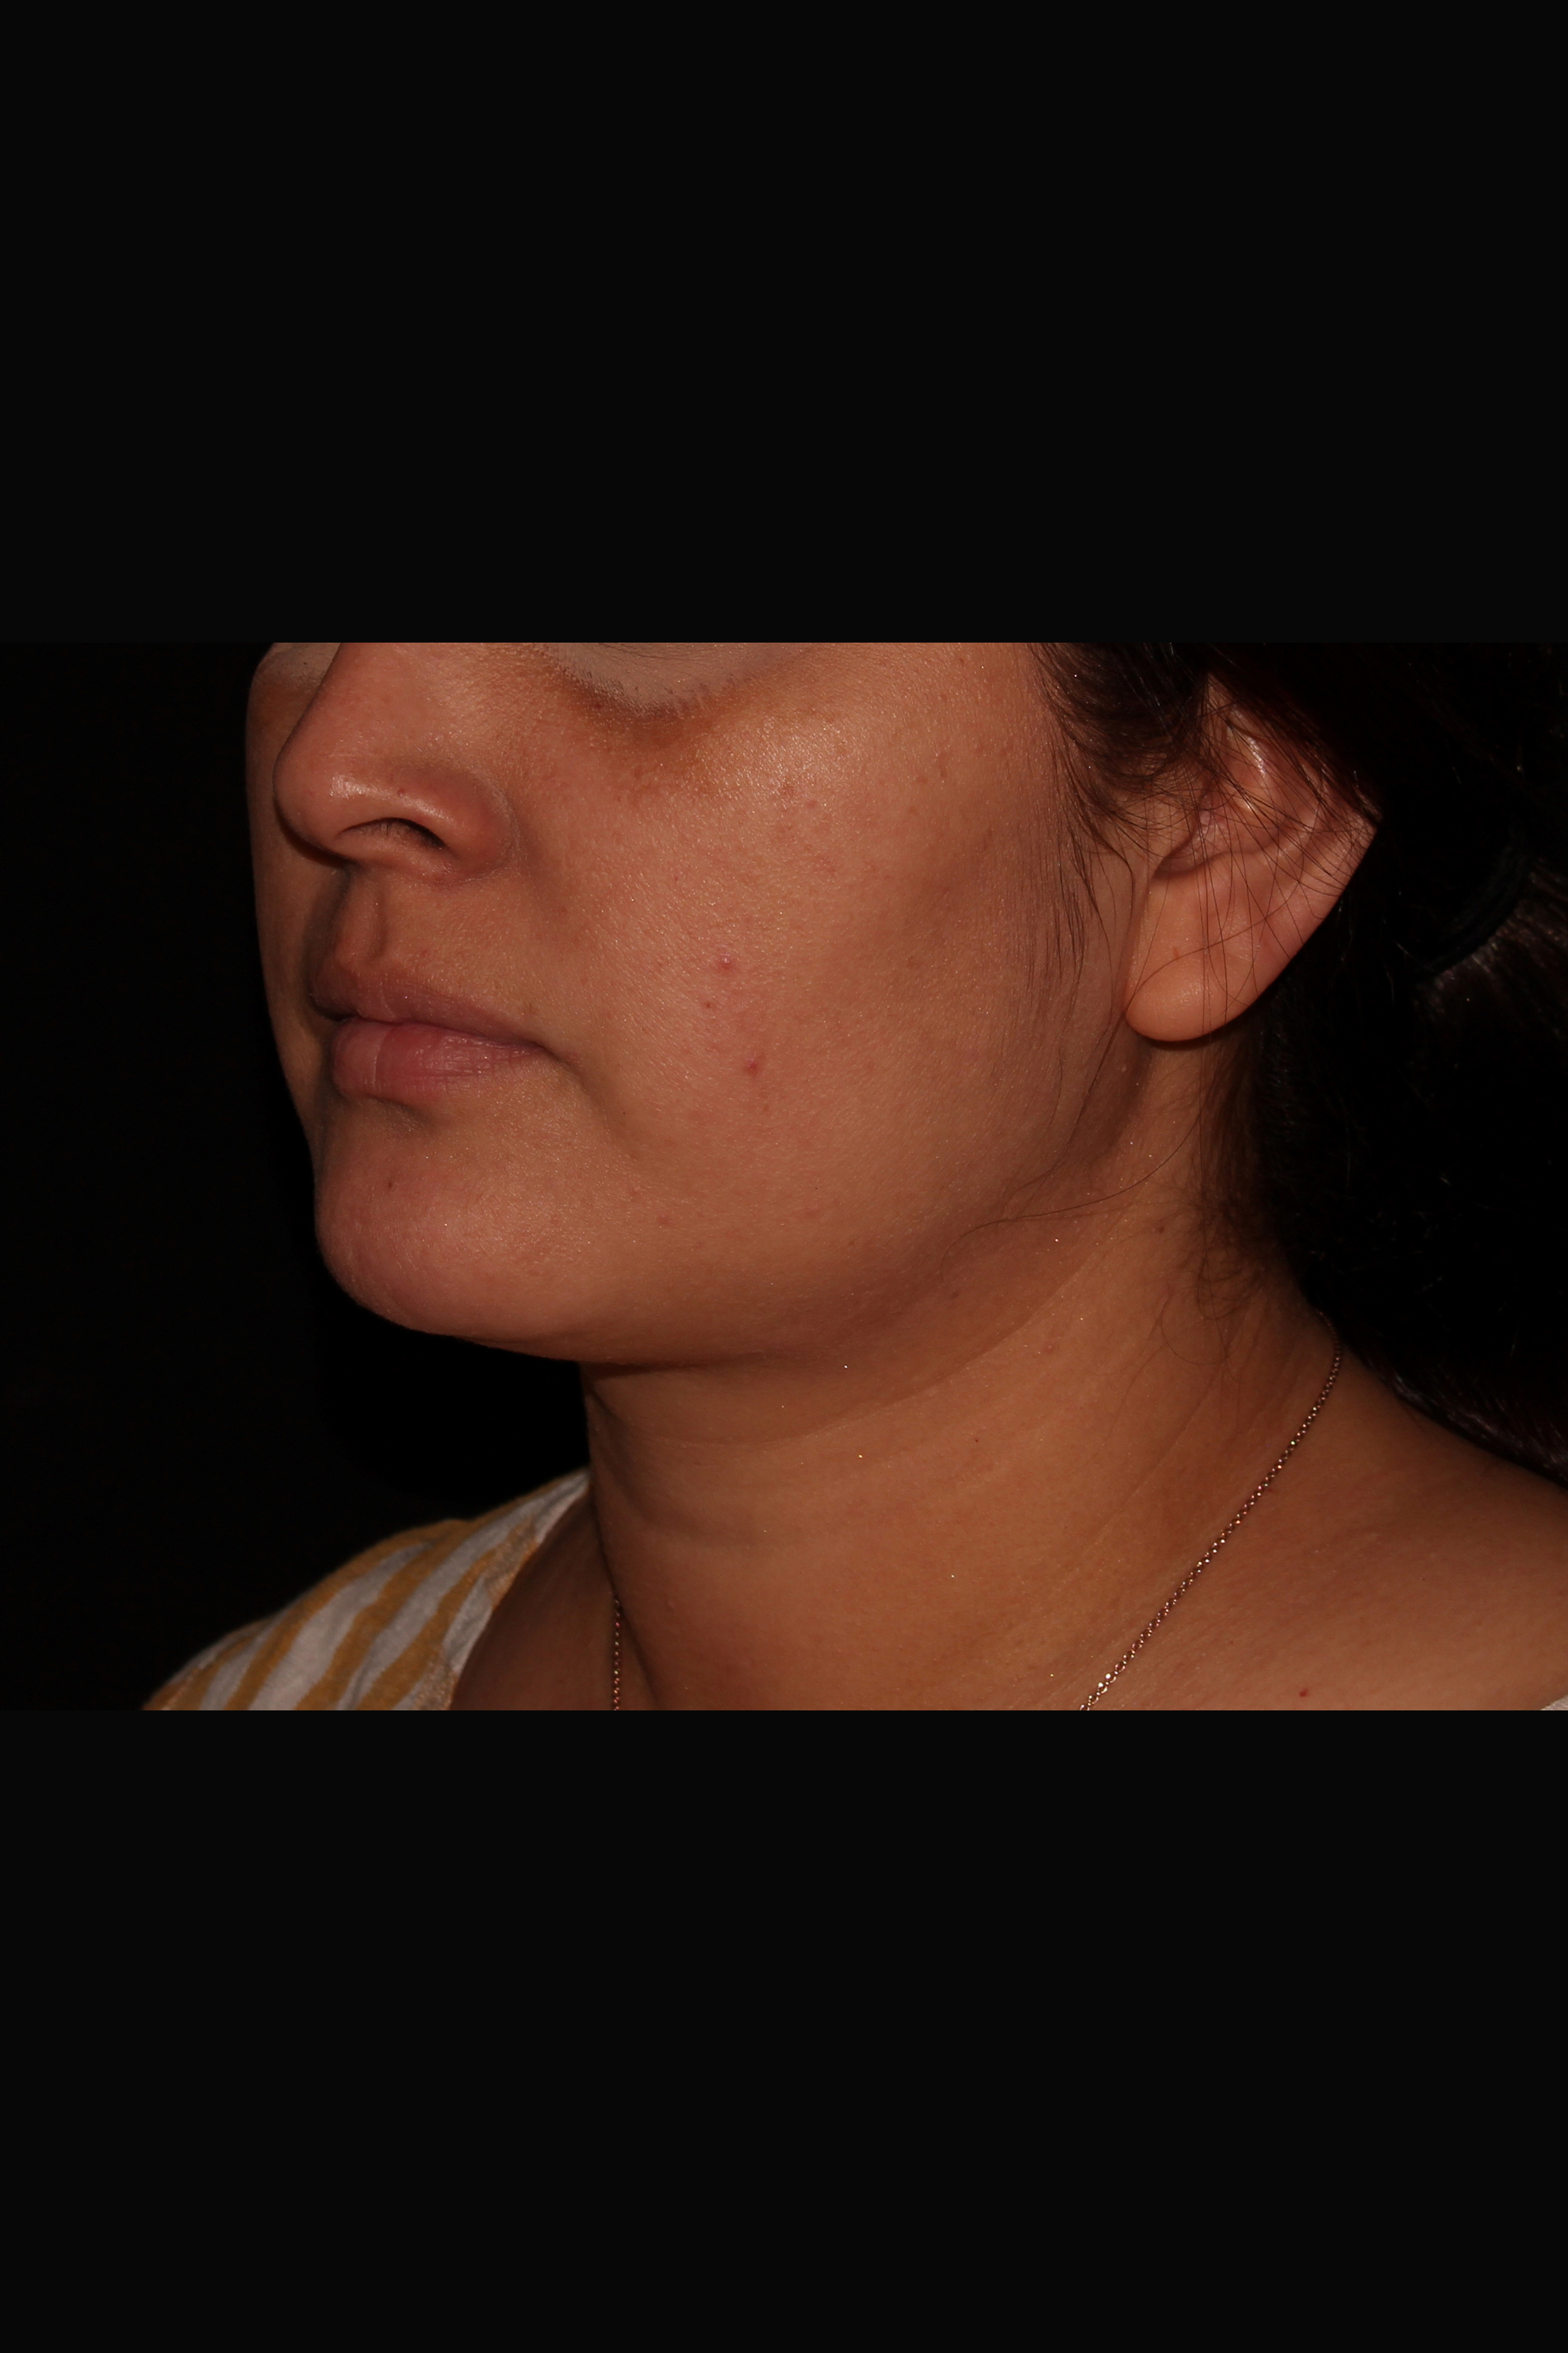 Before Neck Liposuction - Neck Liposuction, Magic Tight & Buccal Fat Pad Removal